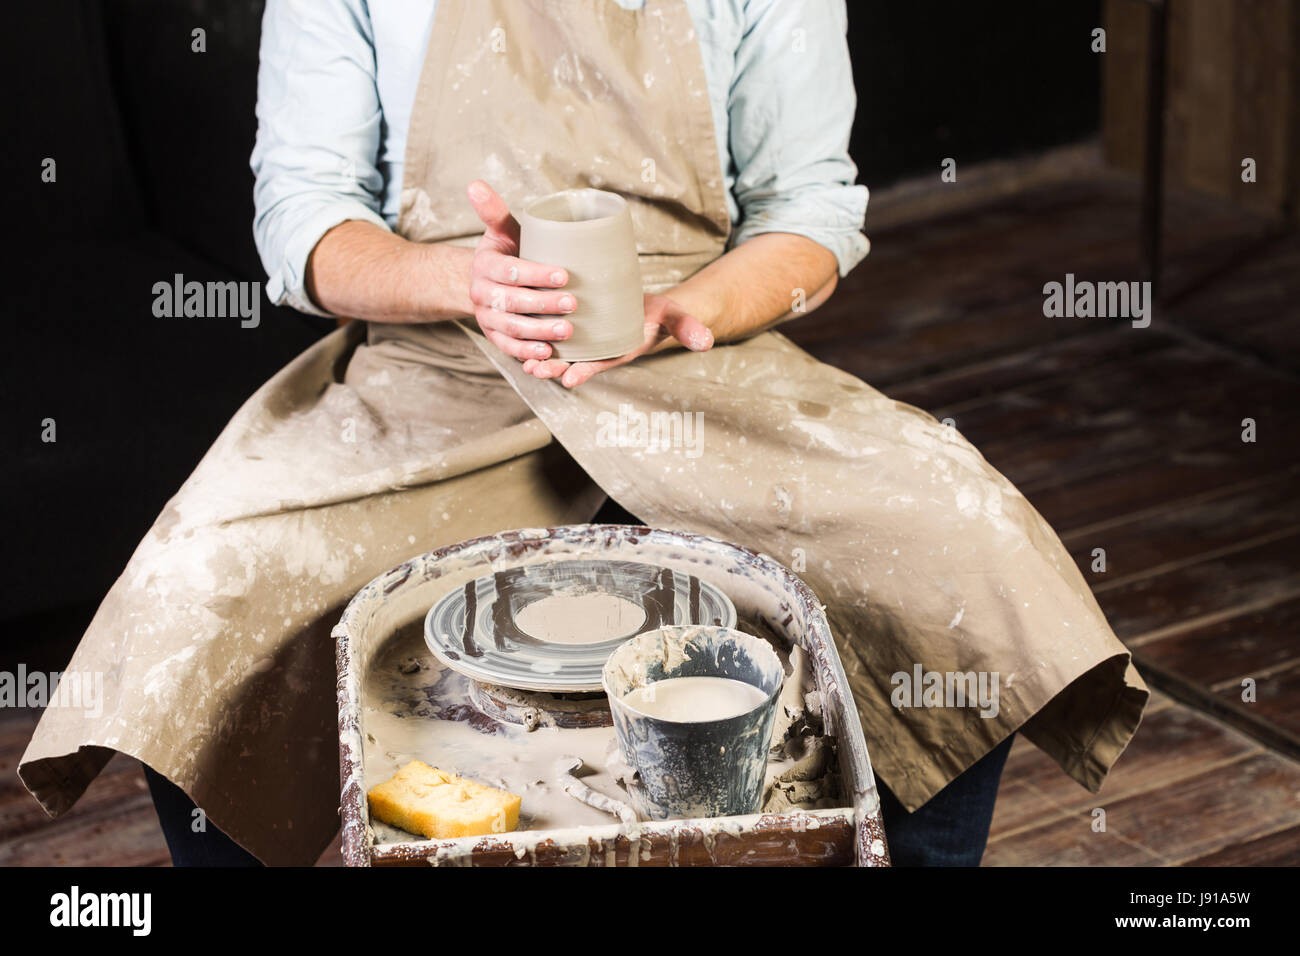 pottery, workshop, ceramics art concept - close-up on male hands holding unfired clay cup, a man examines a fresh - Stock Image